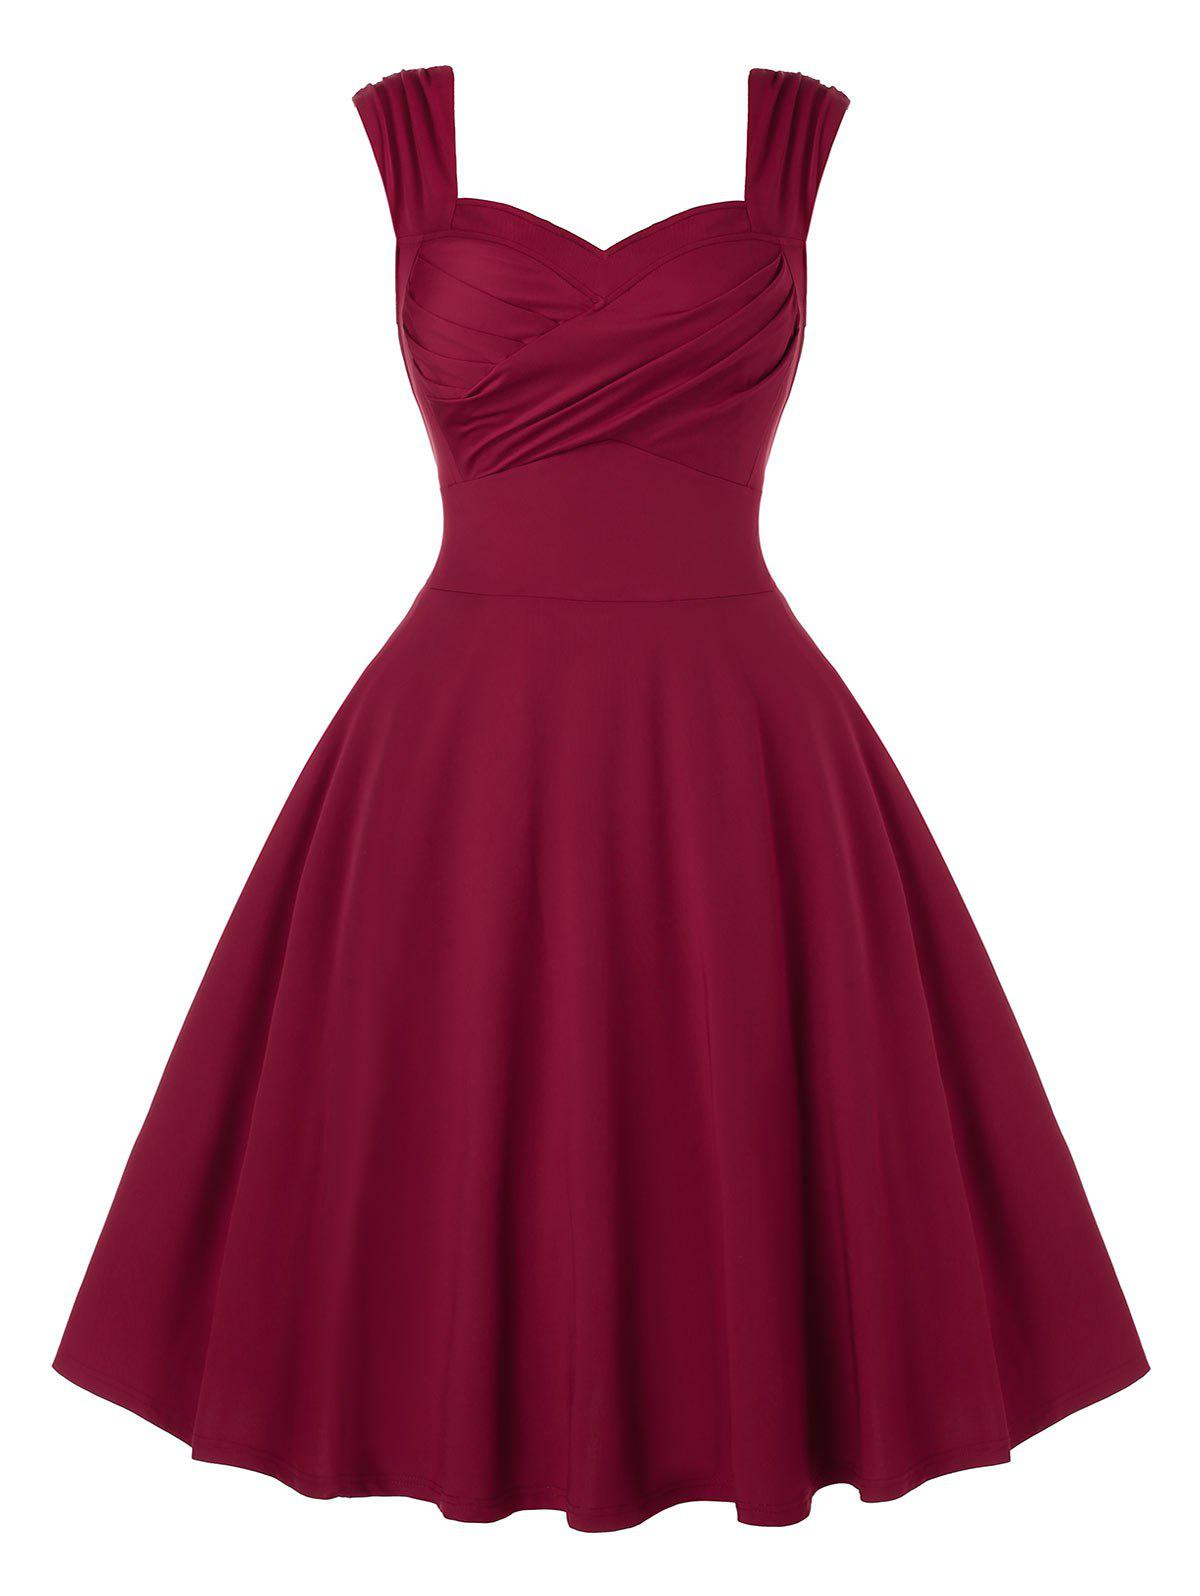 Plus Size Sweetheart Collar Sleeveless Dress - RED WINE 4X